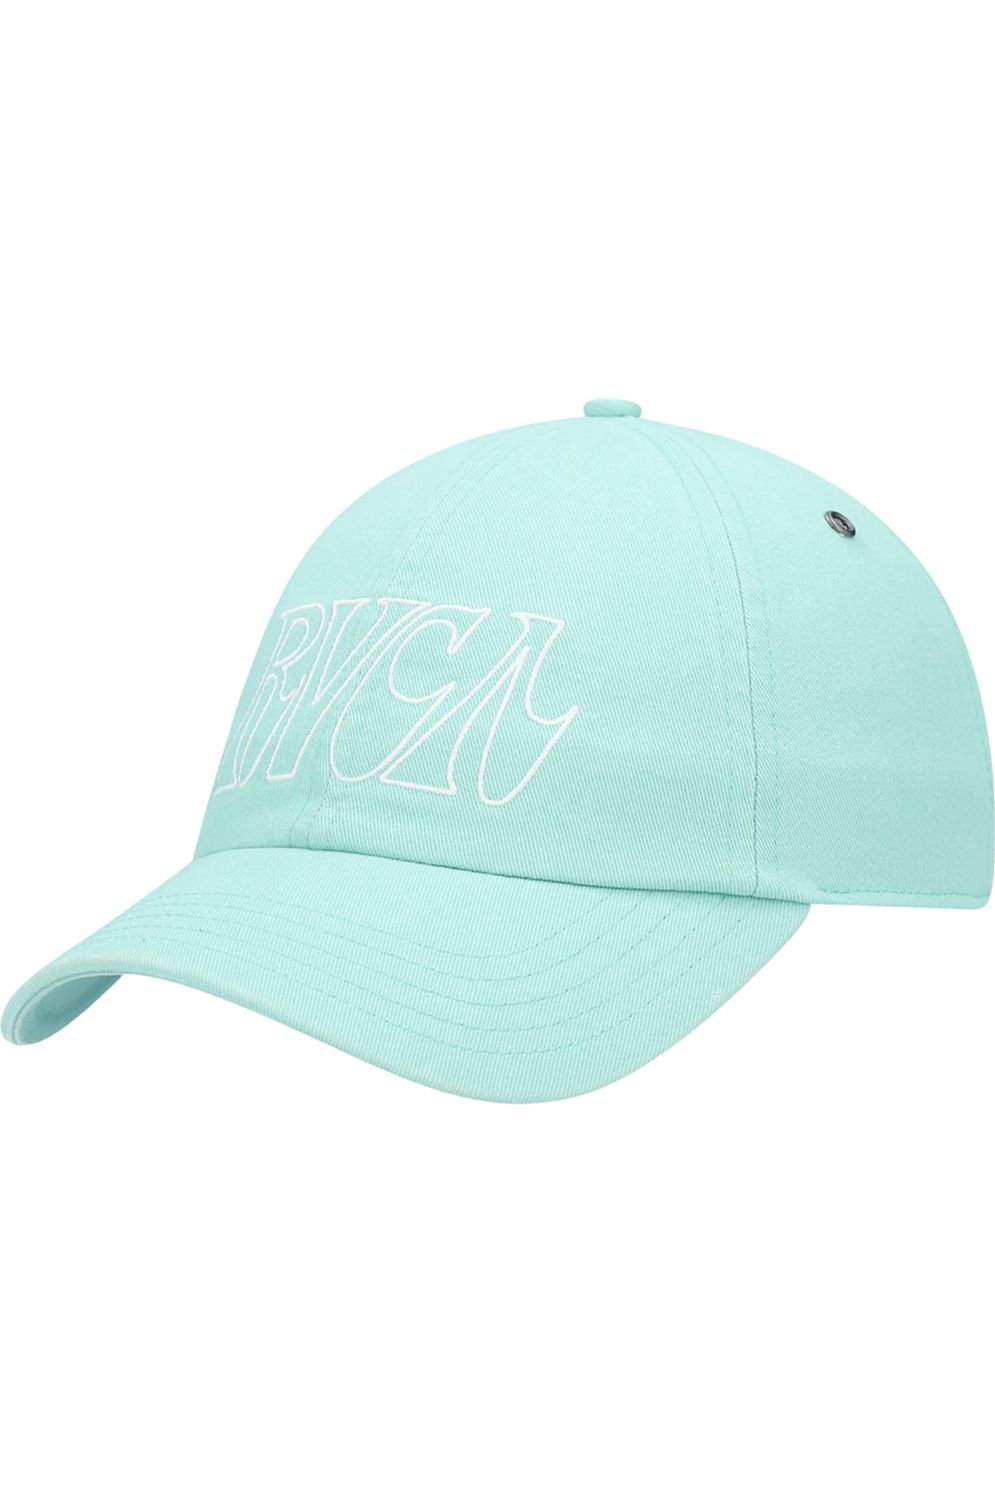 Bone RVCA STAPLE DAD HAT Mint